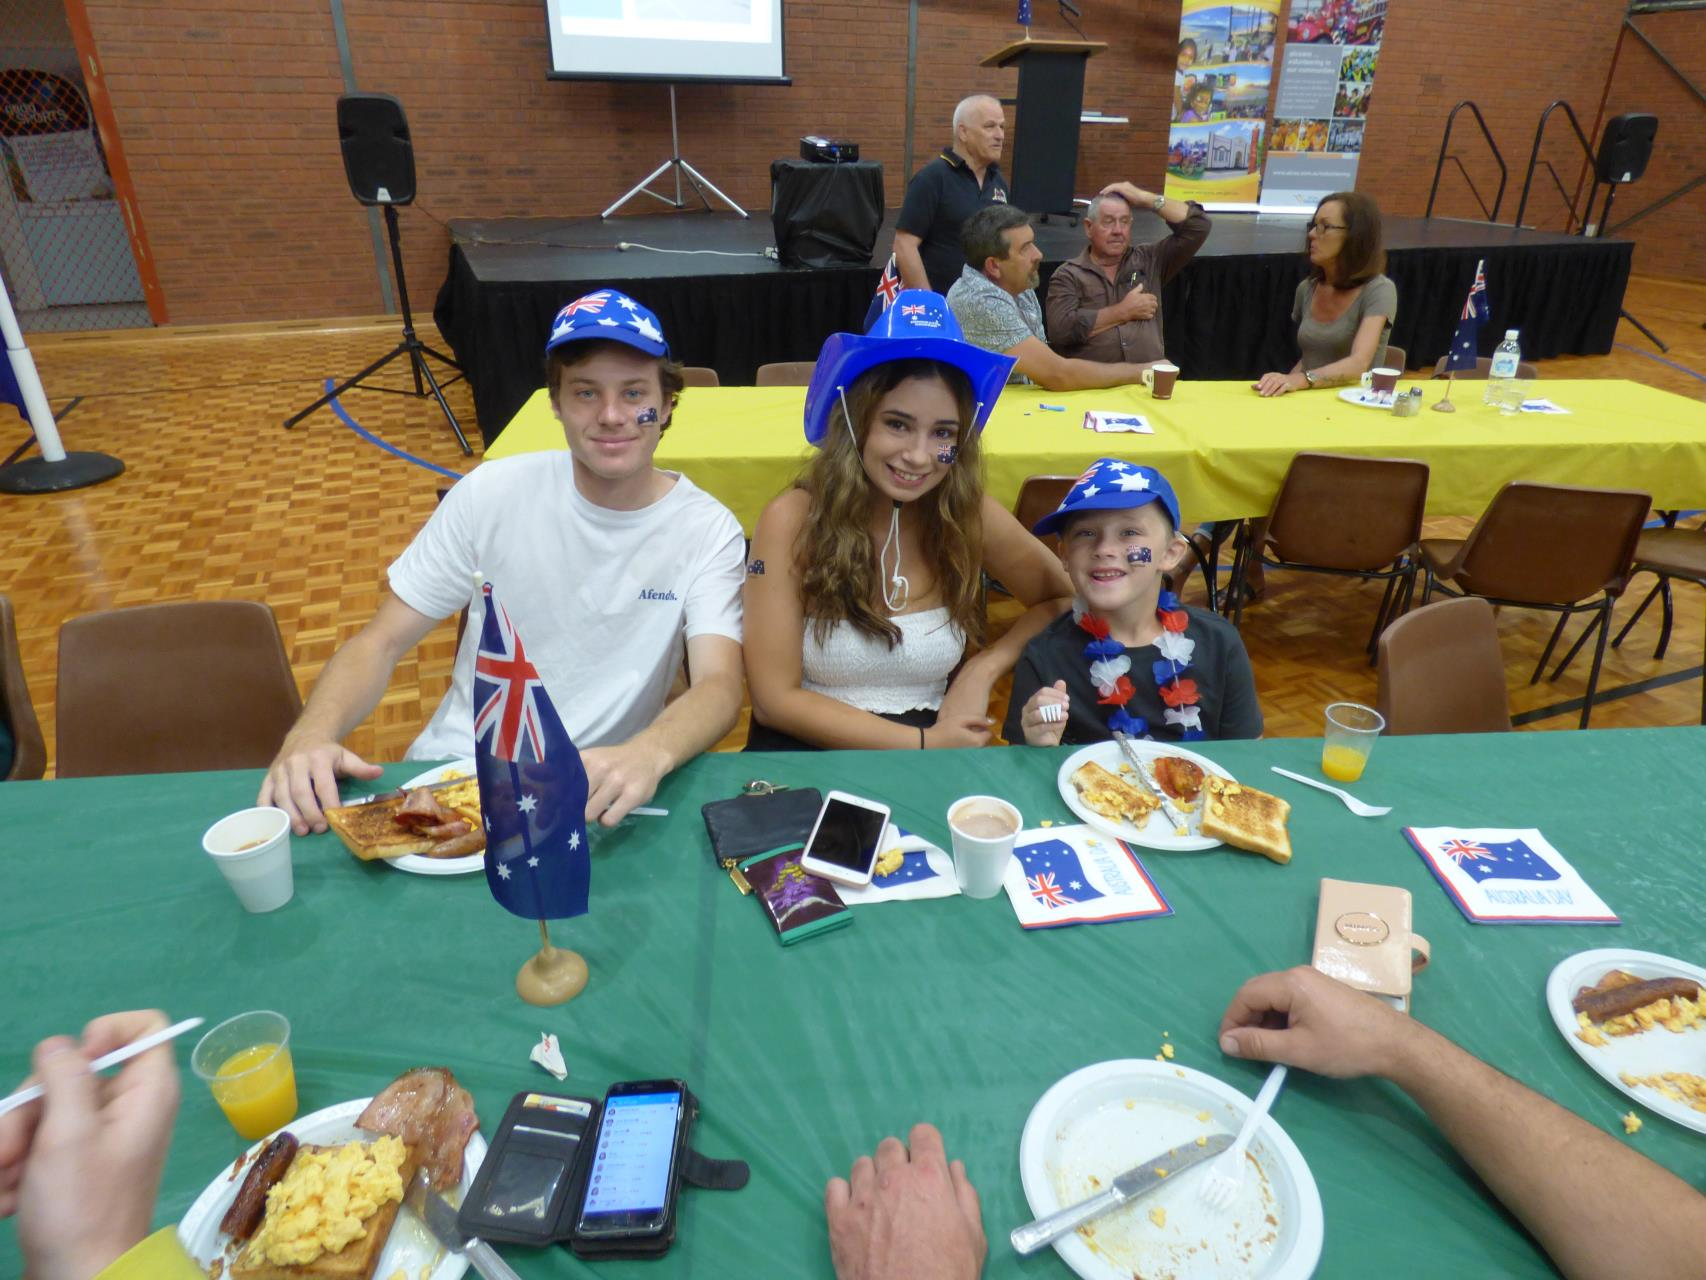 Lions breakfast was a hit with all ages